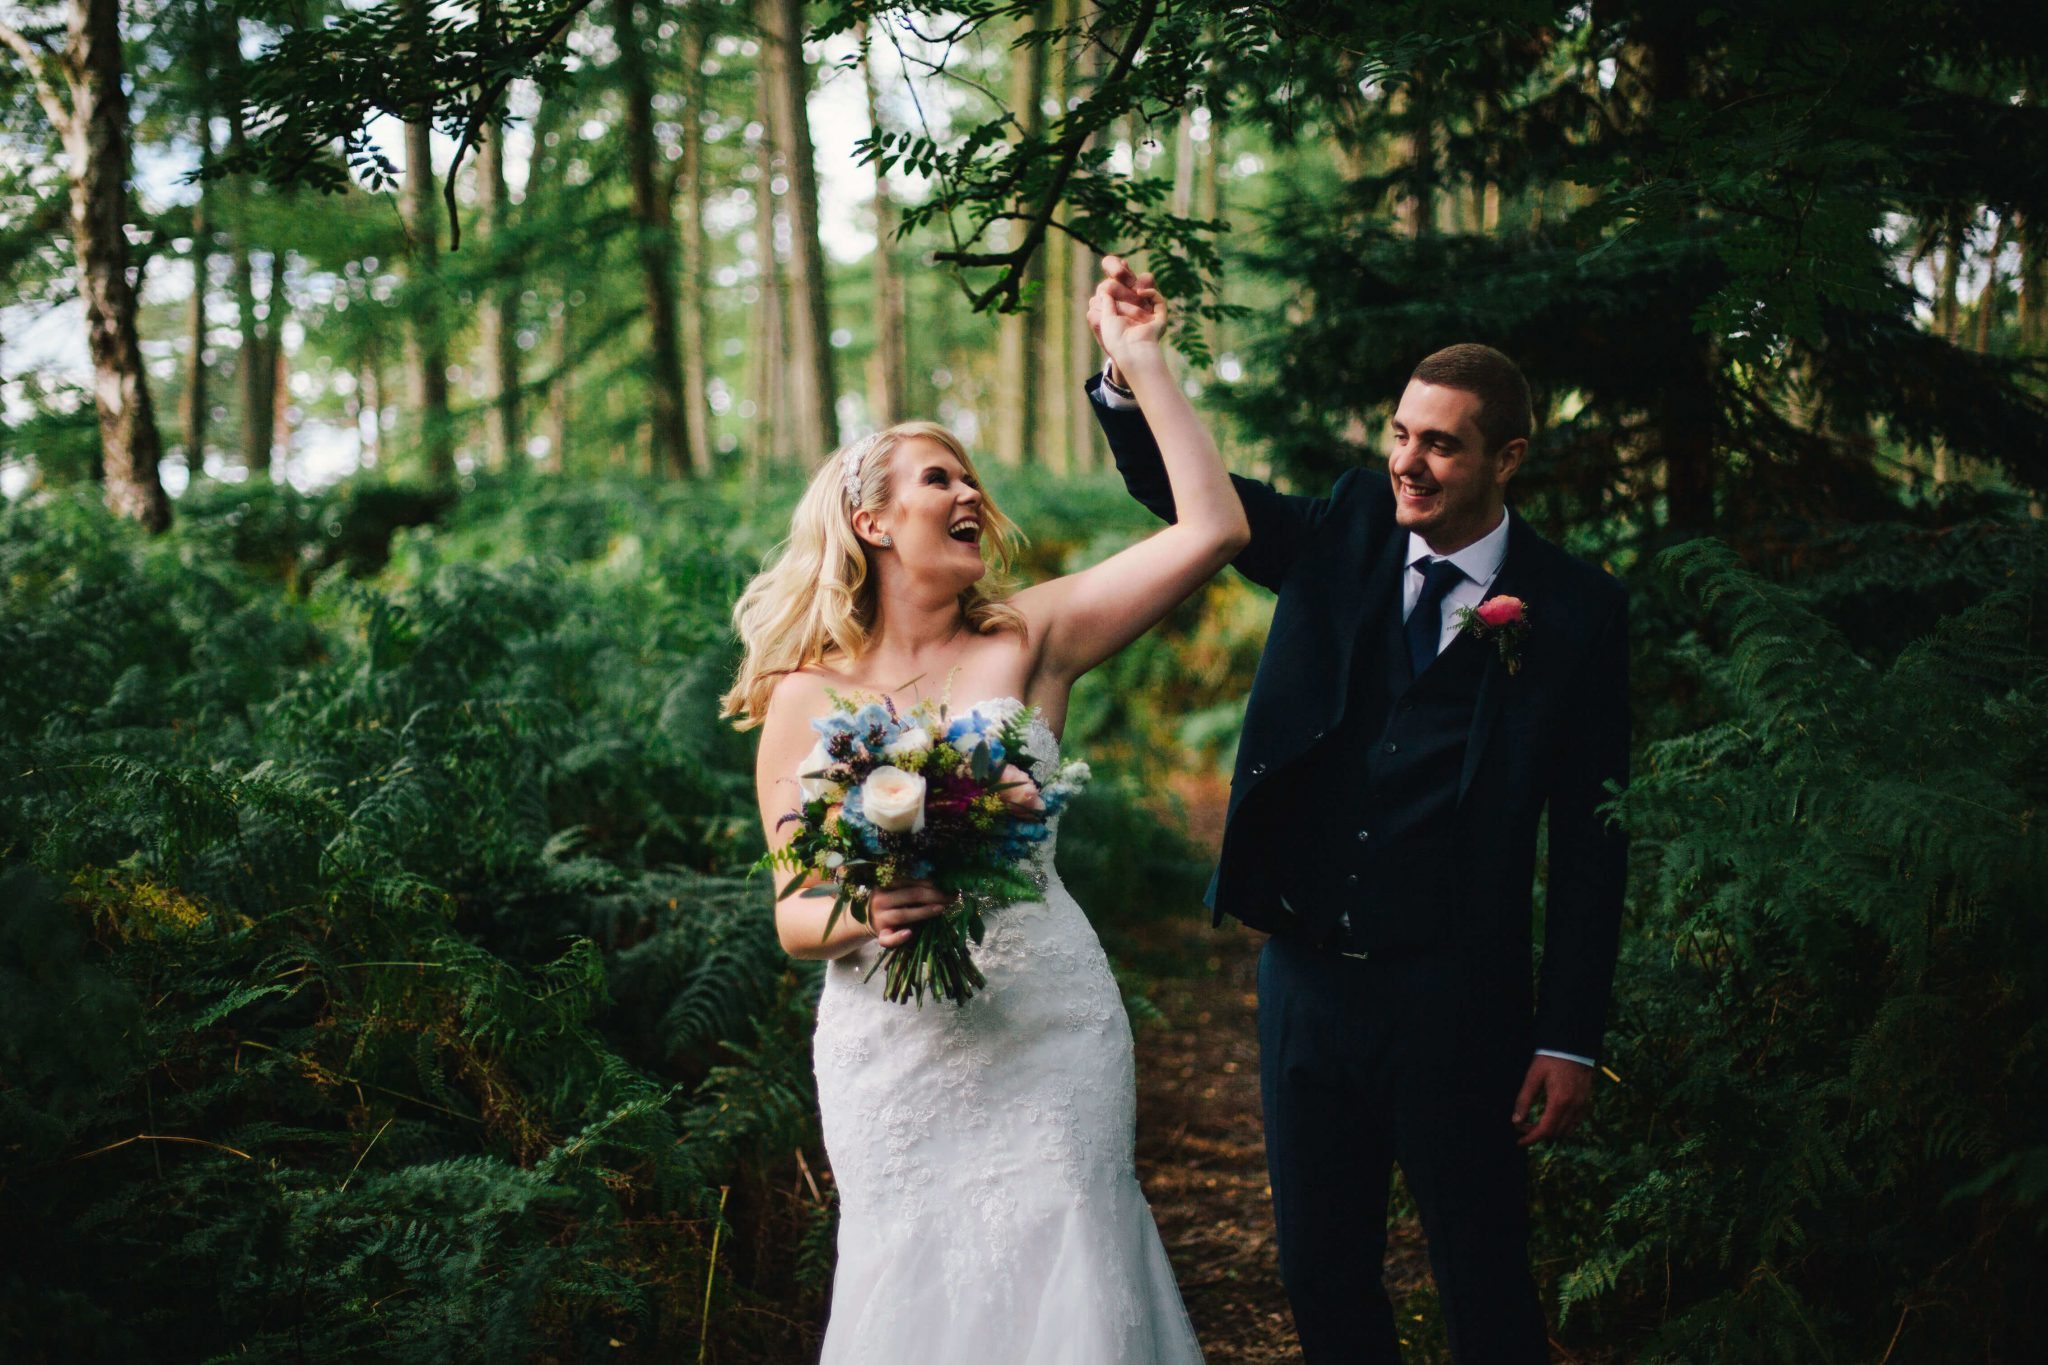 10 Tips To Getting Better Wedding Pictures